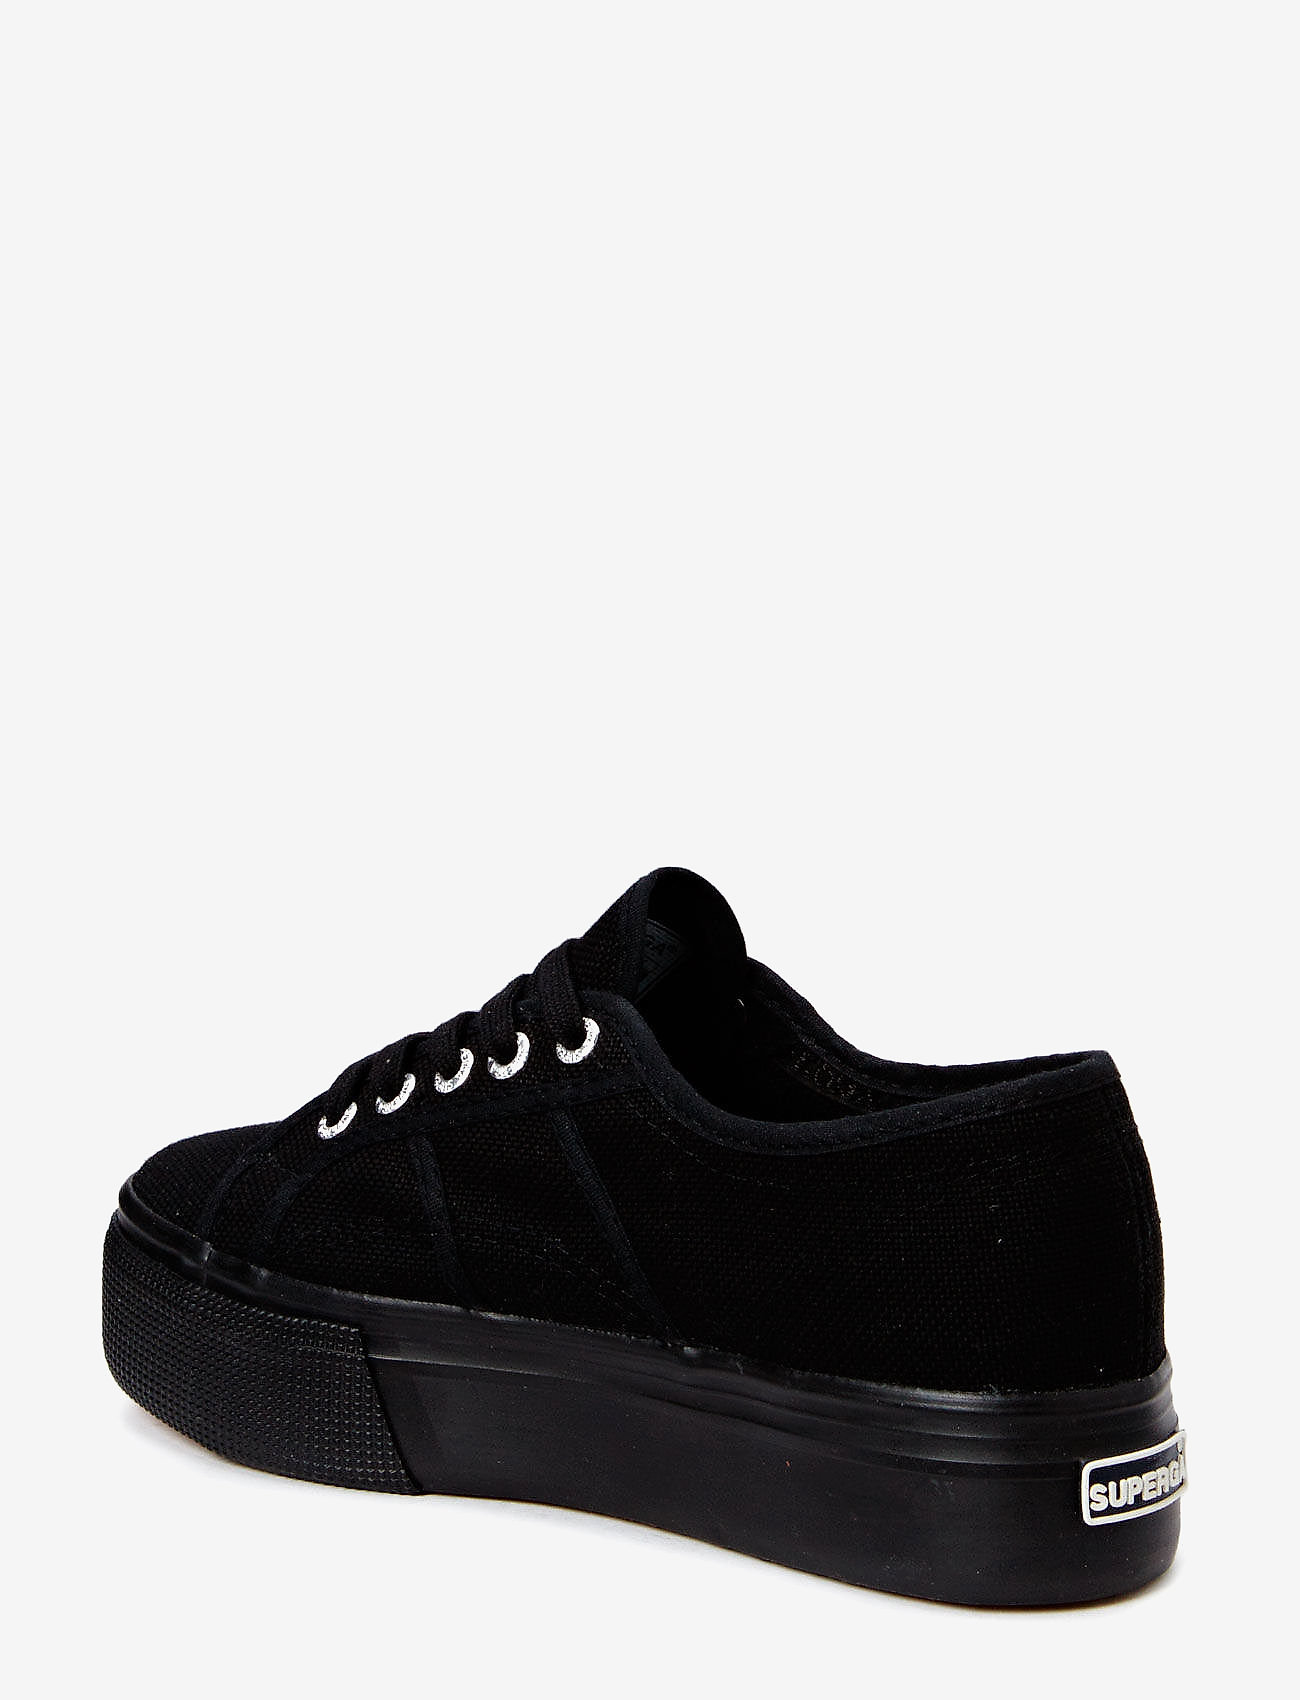 Superga - Superga 2790-Acotw Linea - låga sneakers - full black - 1